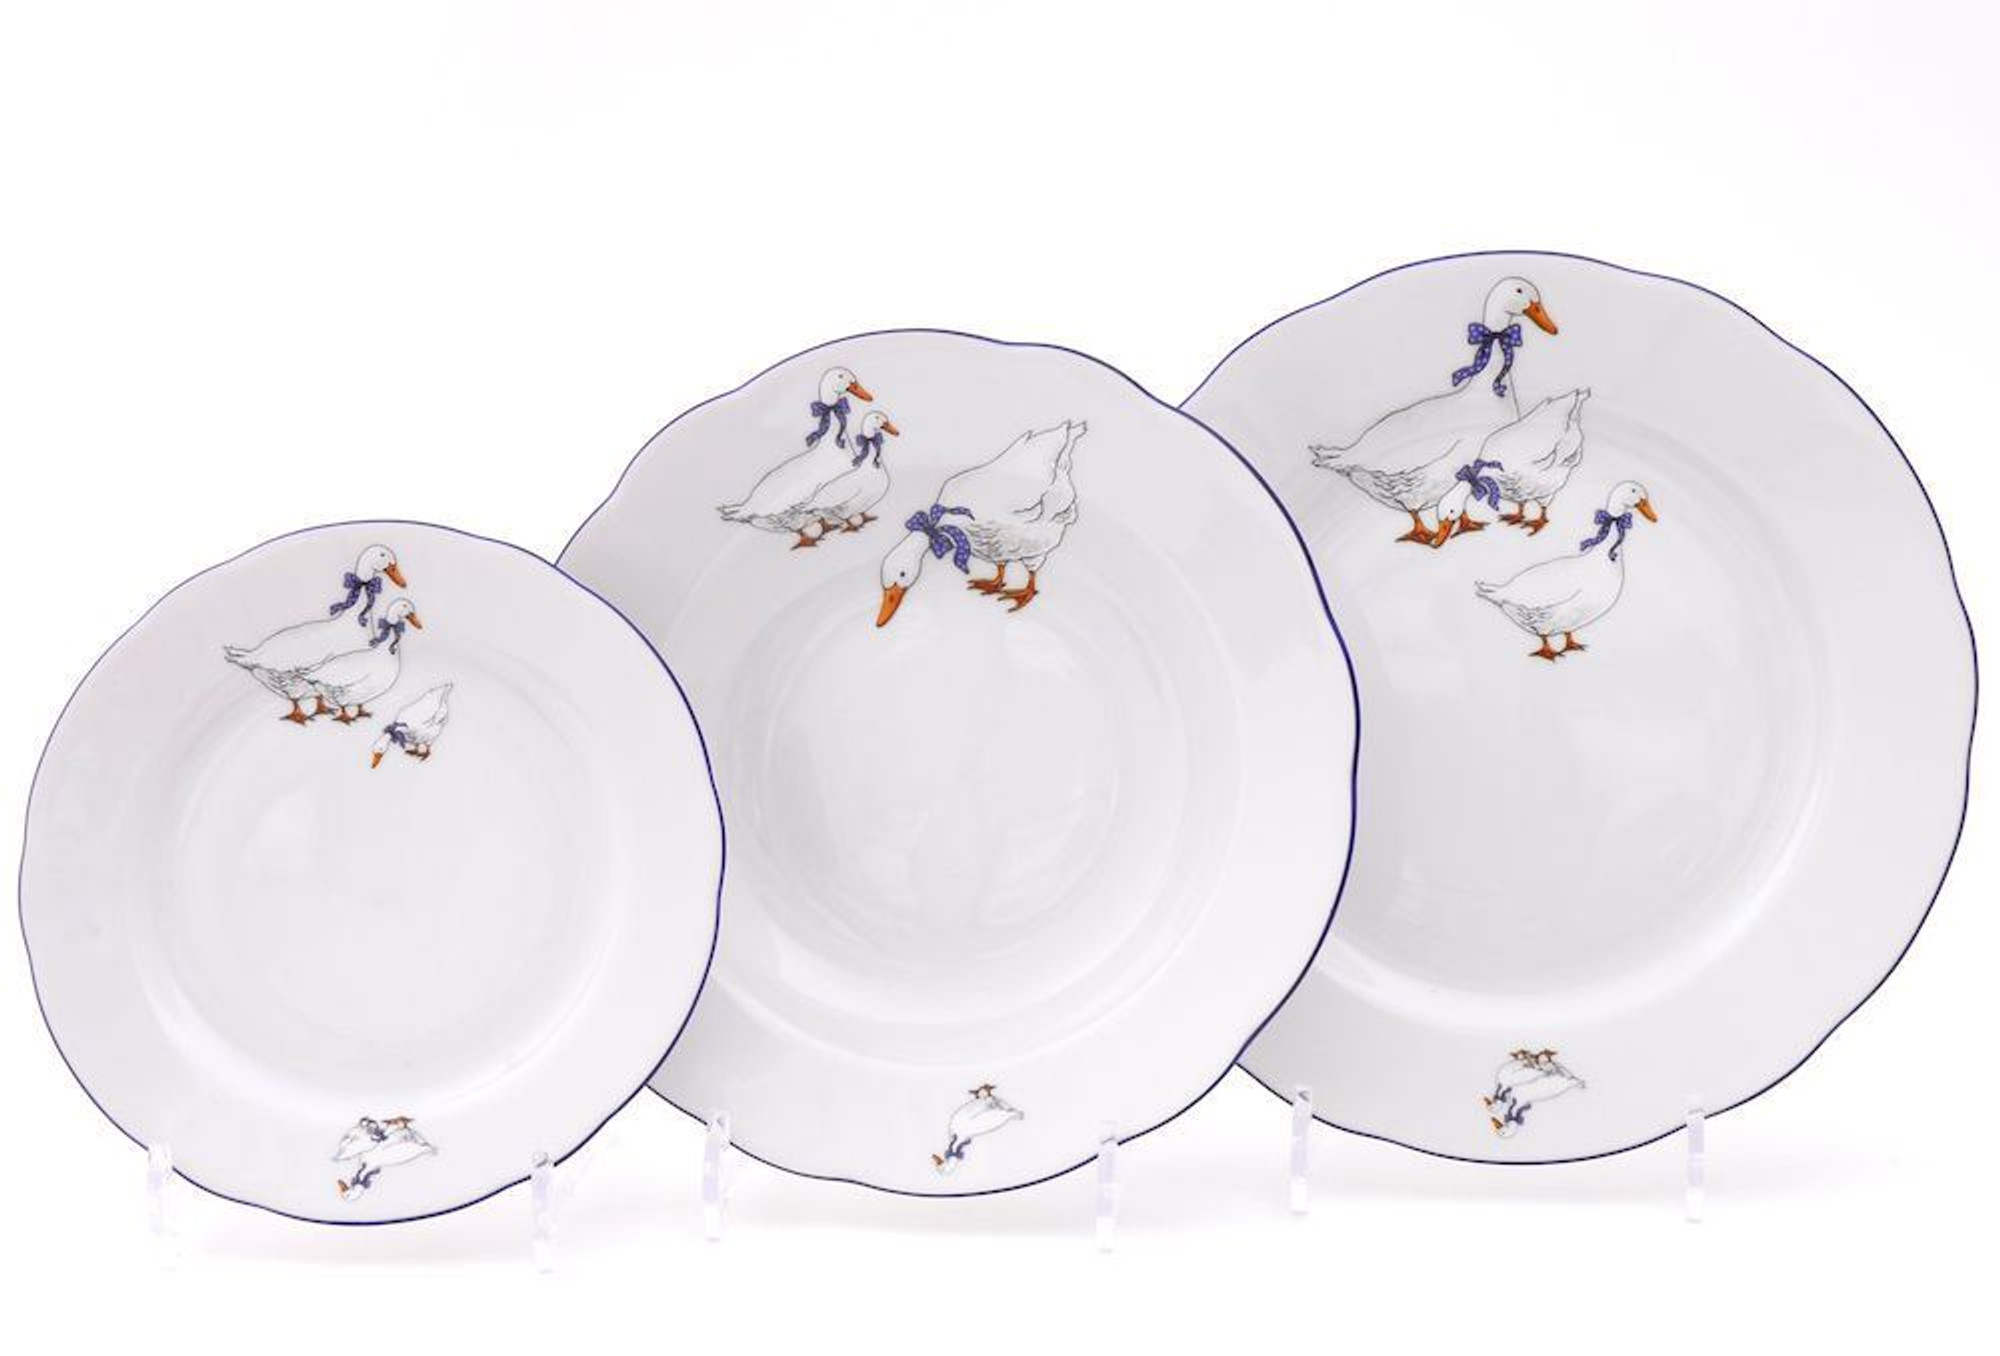 ... Geese Diner plate 9.6 in Czech porcelain ...  sc 1 th 185 & Diner plate 9.6 in Czech porcelain Geese - veralis.me